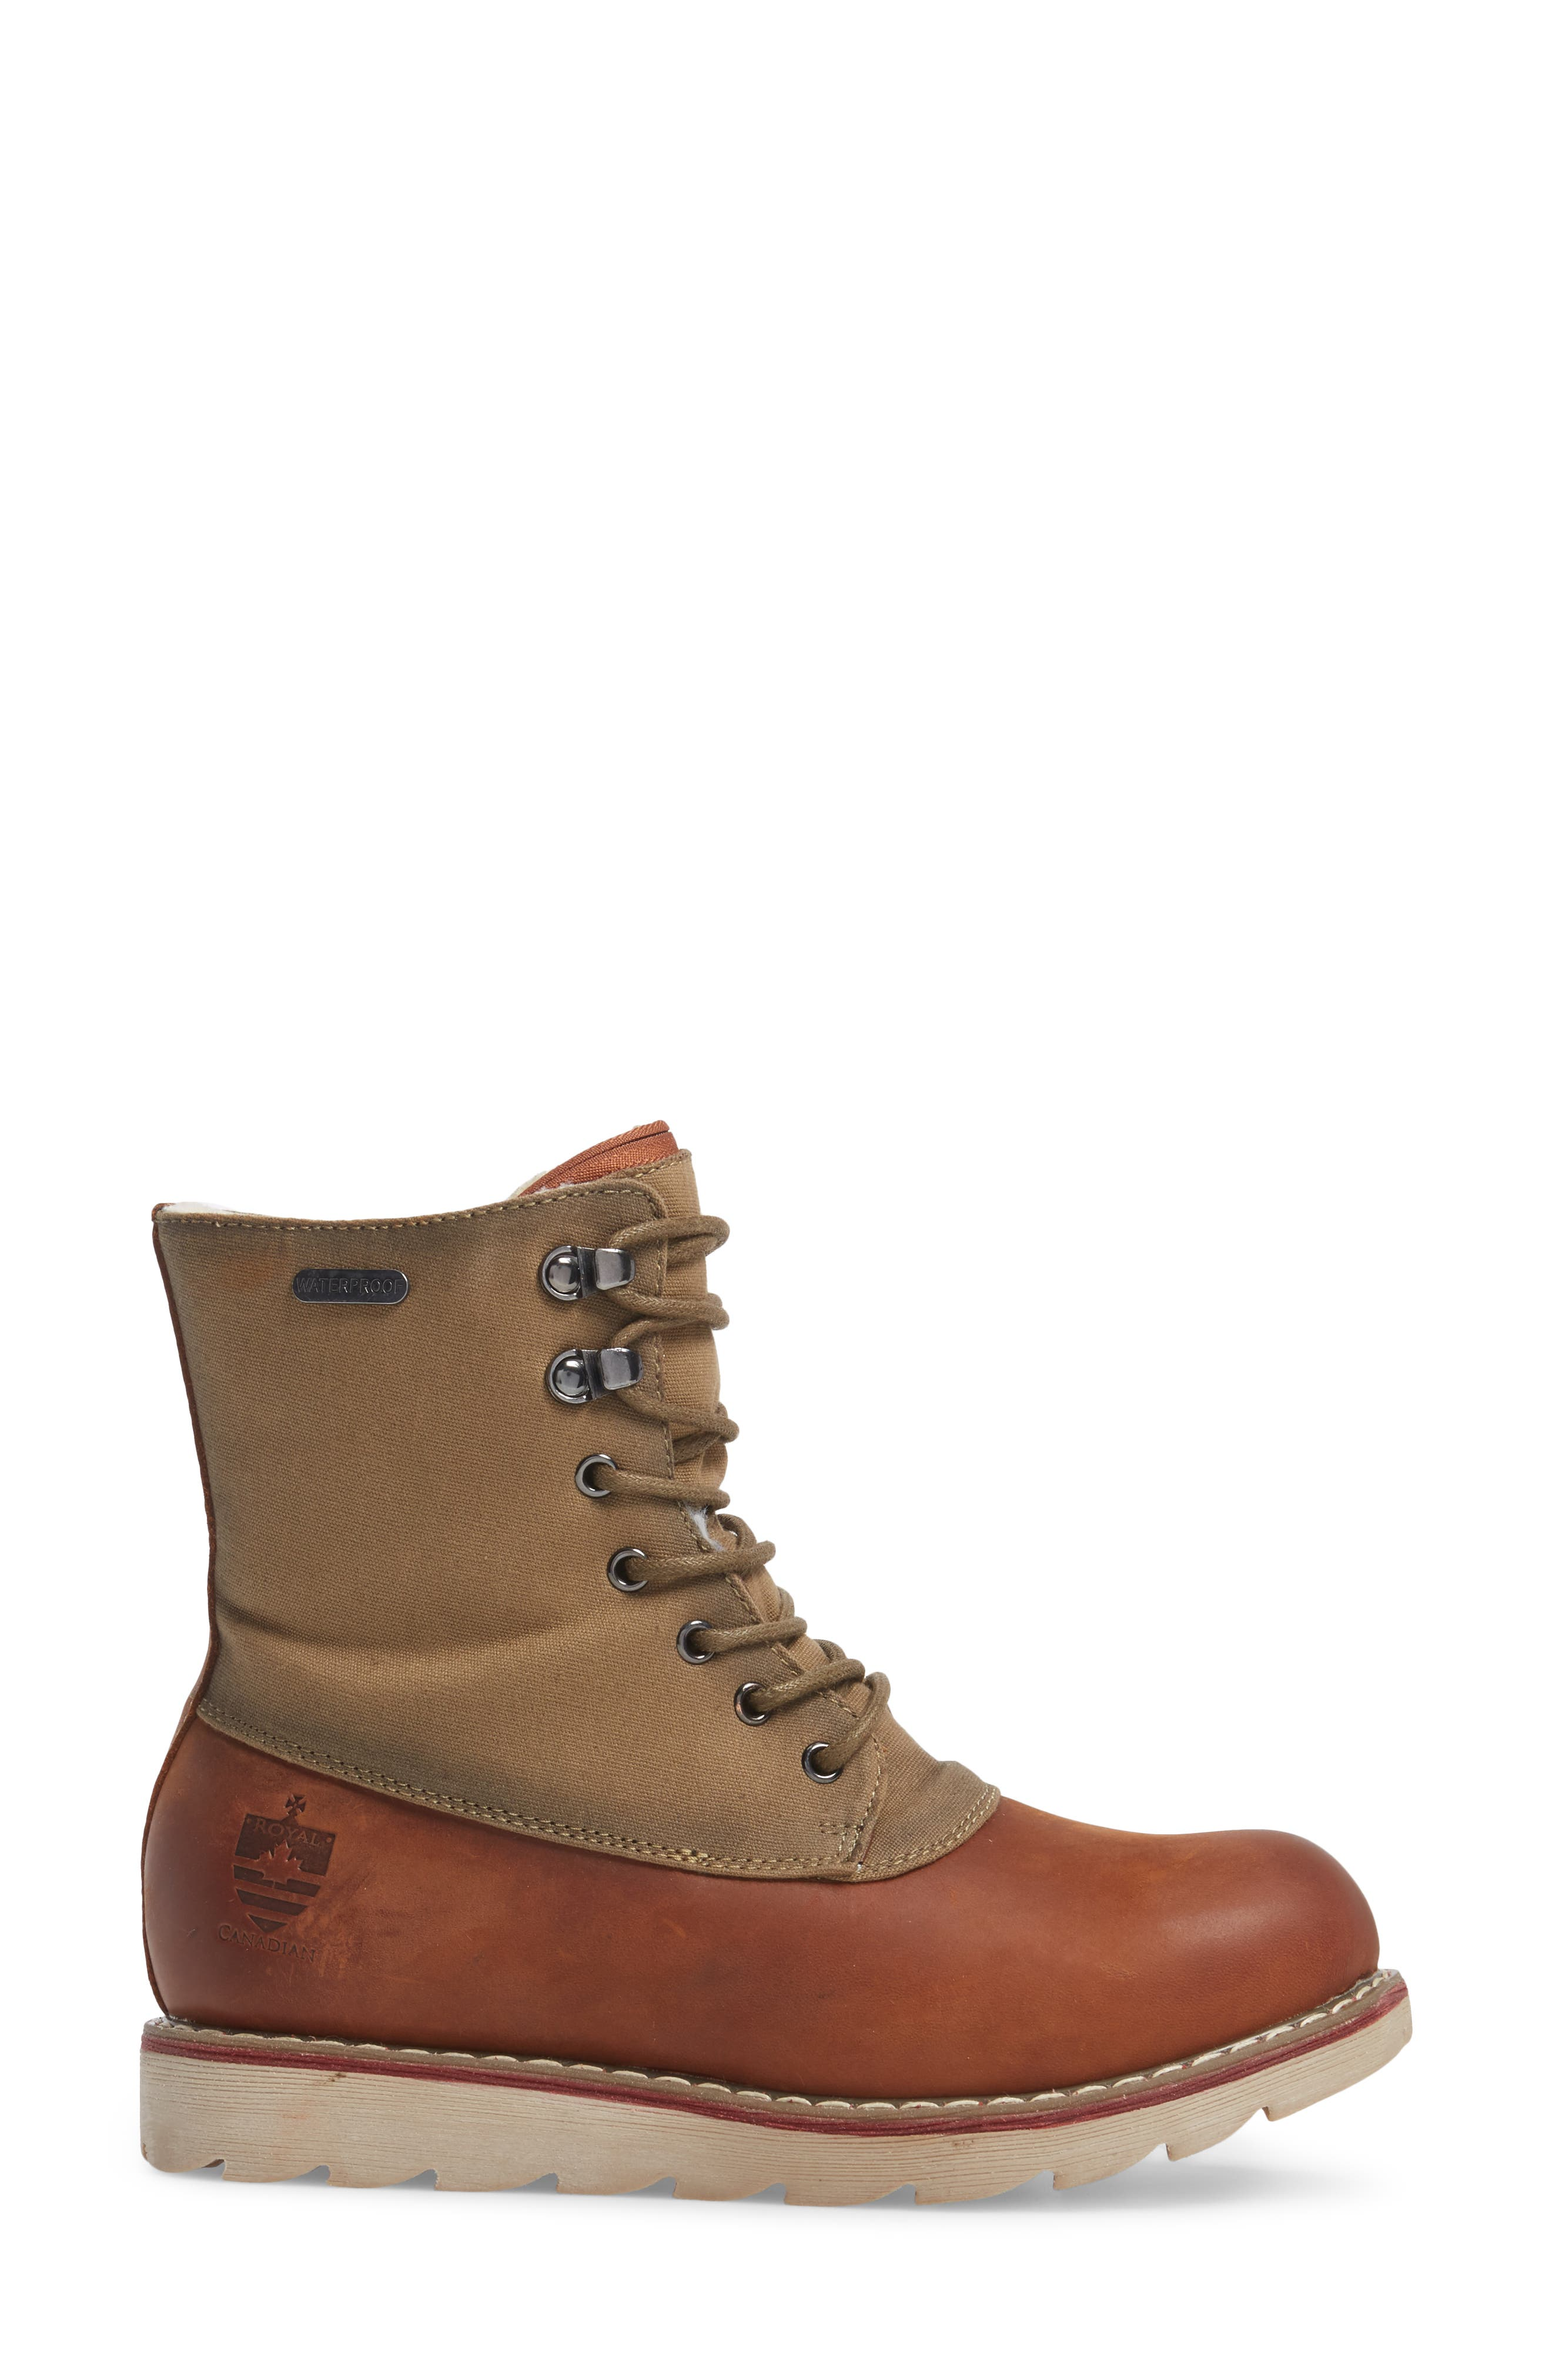 LaSalle Waterproof Insulated Winter Boot,                             Alternate thumbnail 6, color,